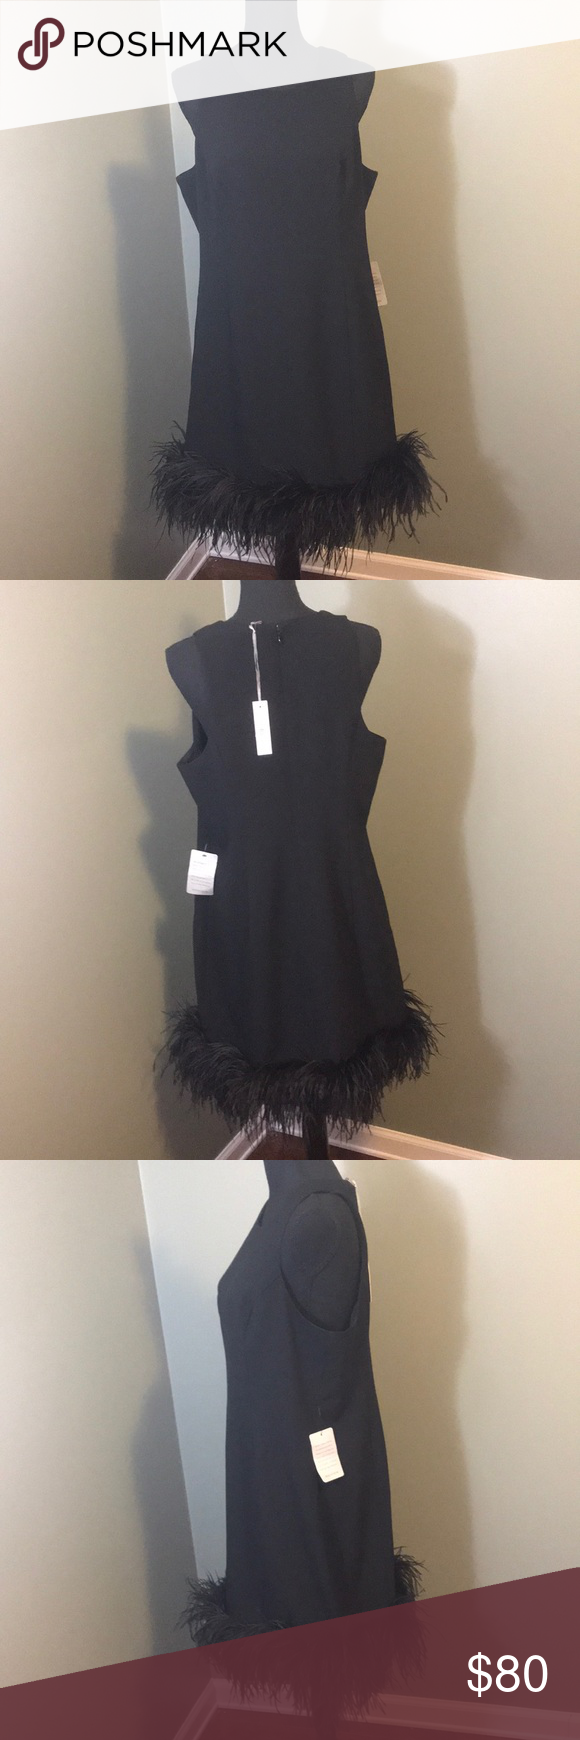 """NWT Chelsea28 Black Sleeveless Dress NWT. Good condition. Sleeveless crew neck with black feather trim on hem. Has lining inside. Closes with zipper and hook in back. ~34"""" from shoulder to hem. 41"""" around bust. Chelsea28 Dresses Midi #blacksleevelessdress"""